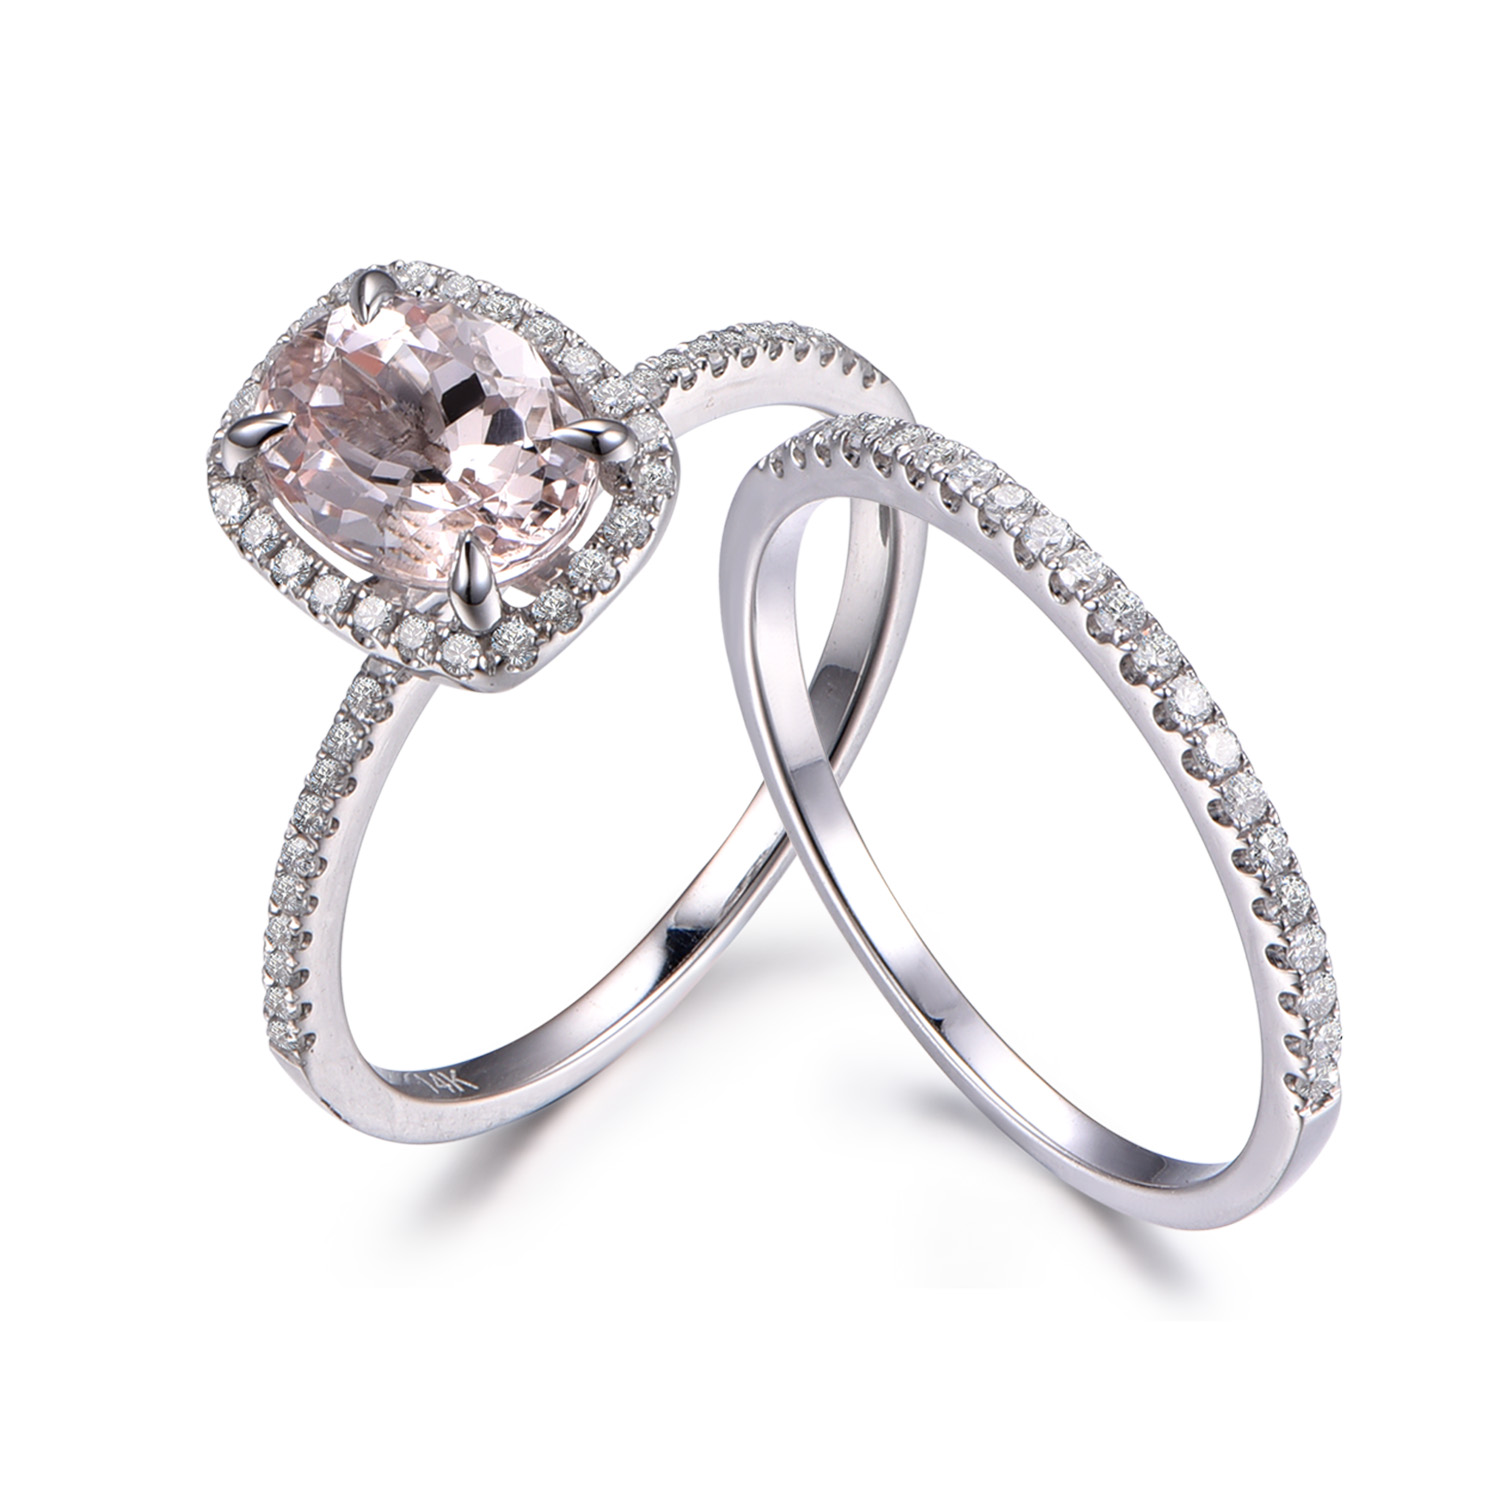 simple alternative platinum of karla weddings karlaquot solitaire luxury com engagement rings unique ring